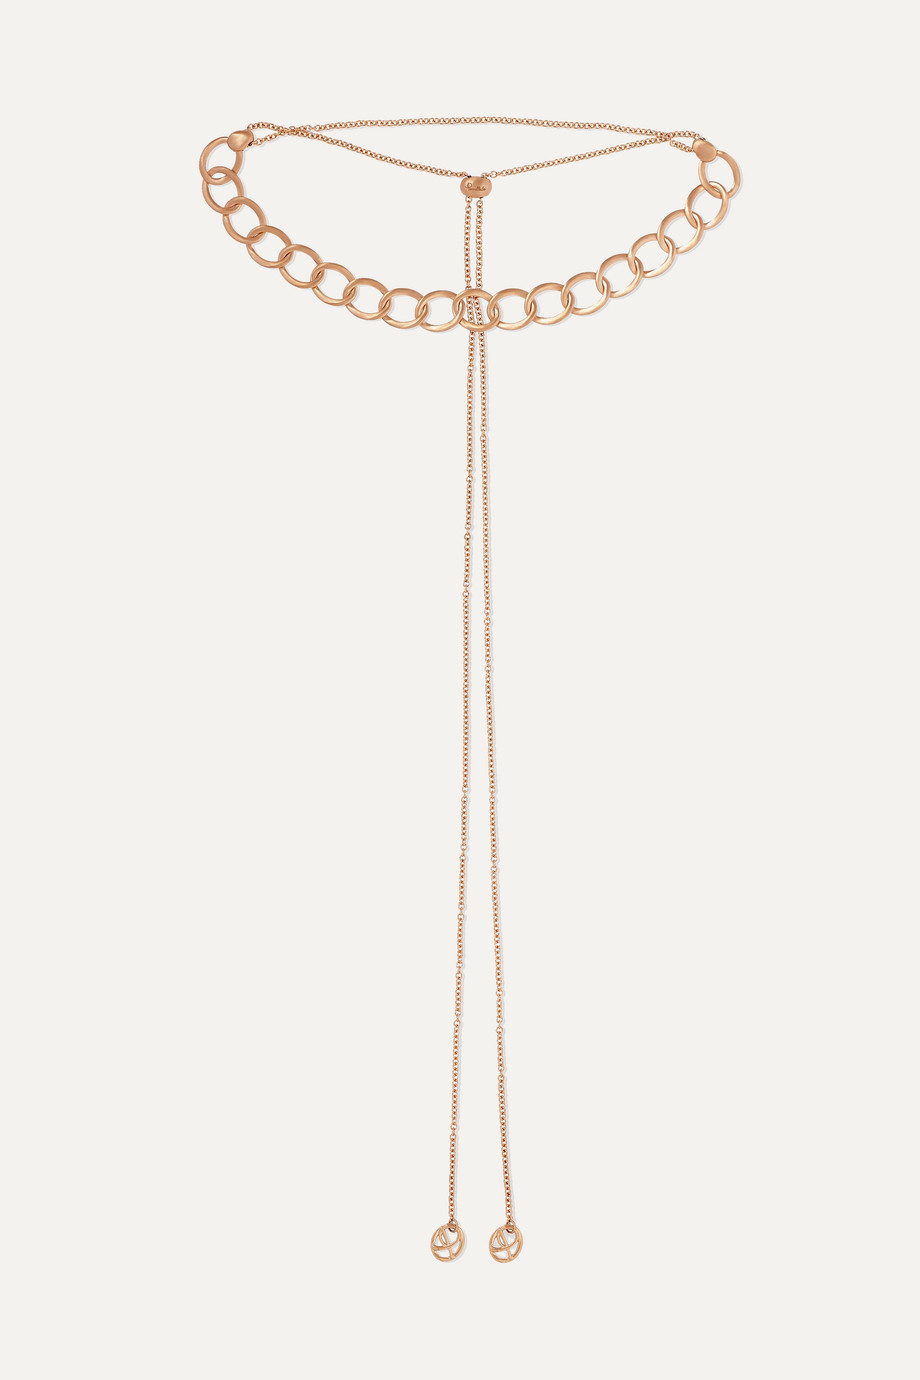 Pomellato 18-karat rose gold necklace